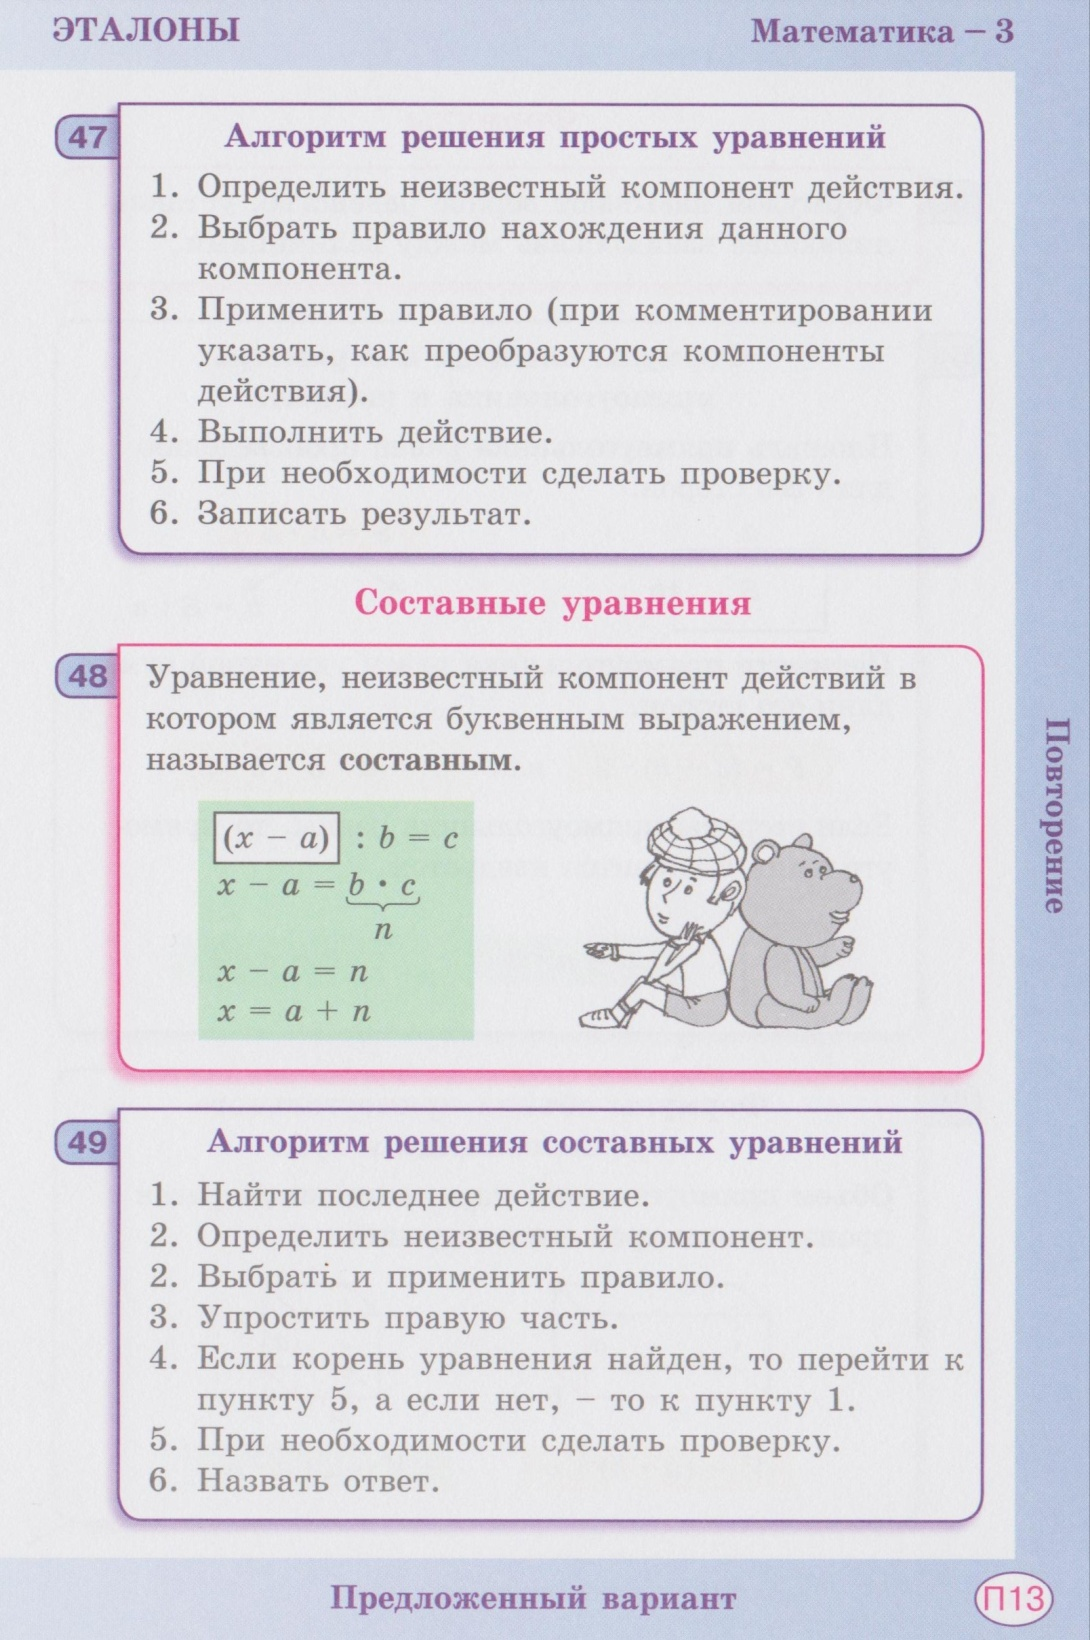 C:\Users\Настя\Pictures\2012-09-08 13\13 001.jpg